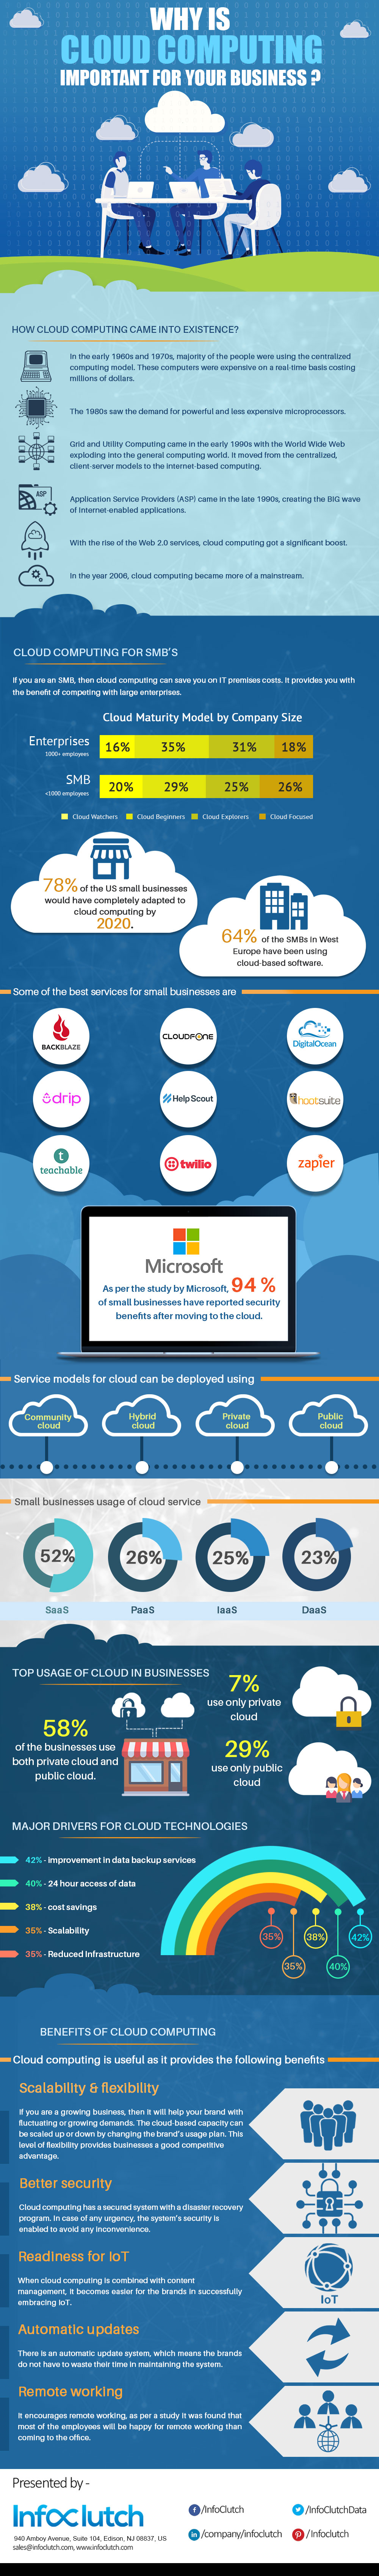 Why is Cloud Computing Important for Your Business?